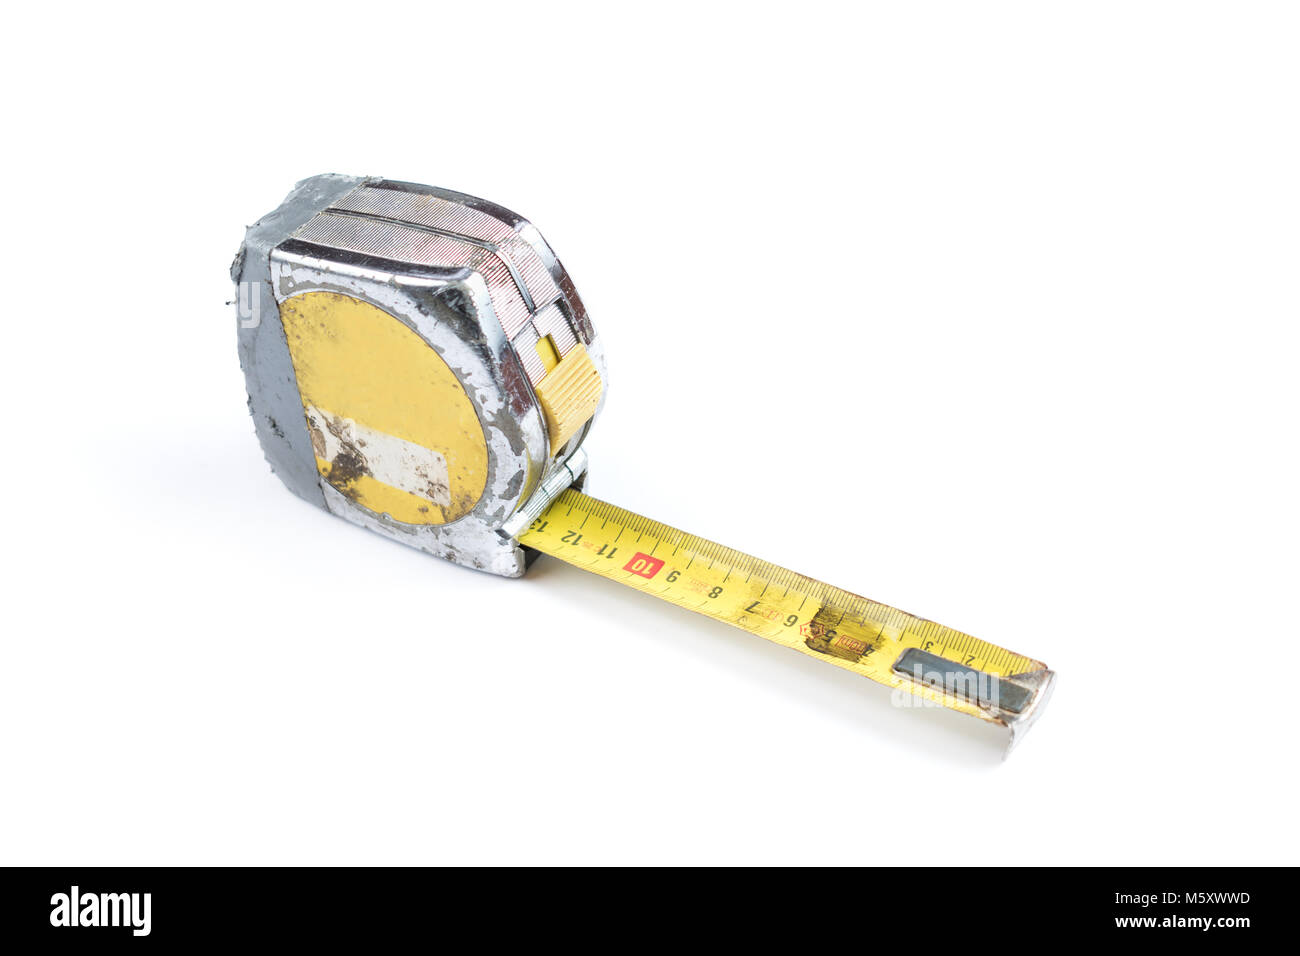 Old and worn out yellow measure tape on a white background, surface. Industrial measure tape. - Stock Image